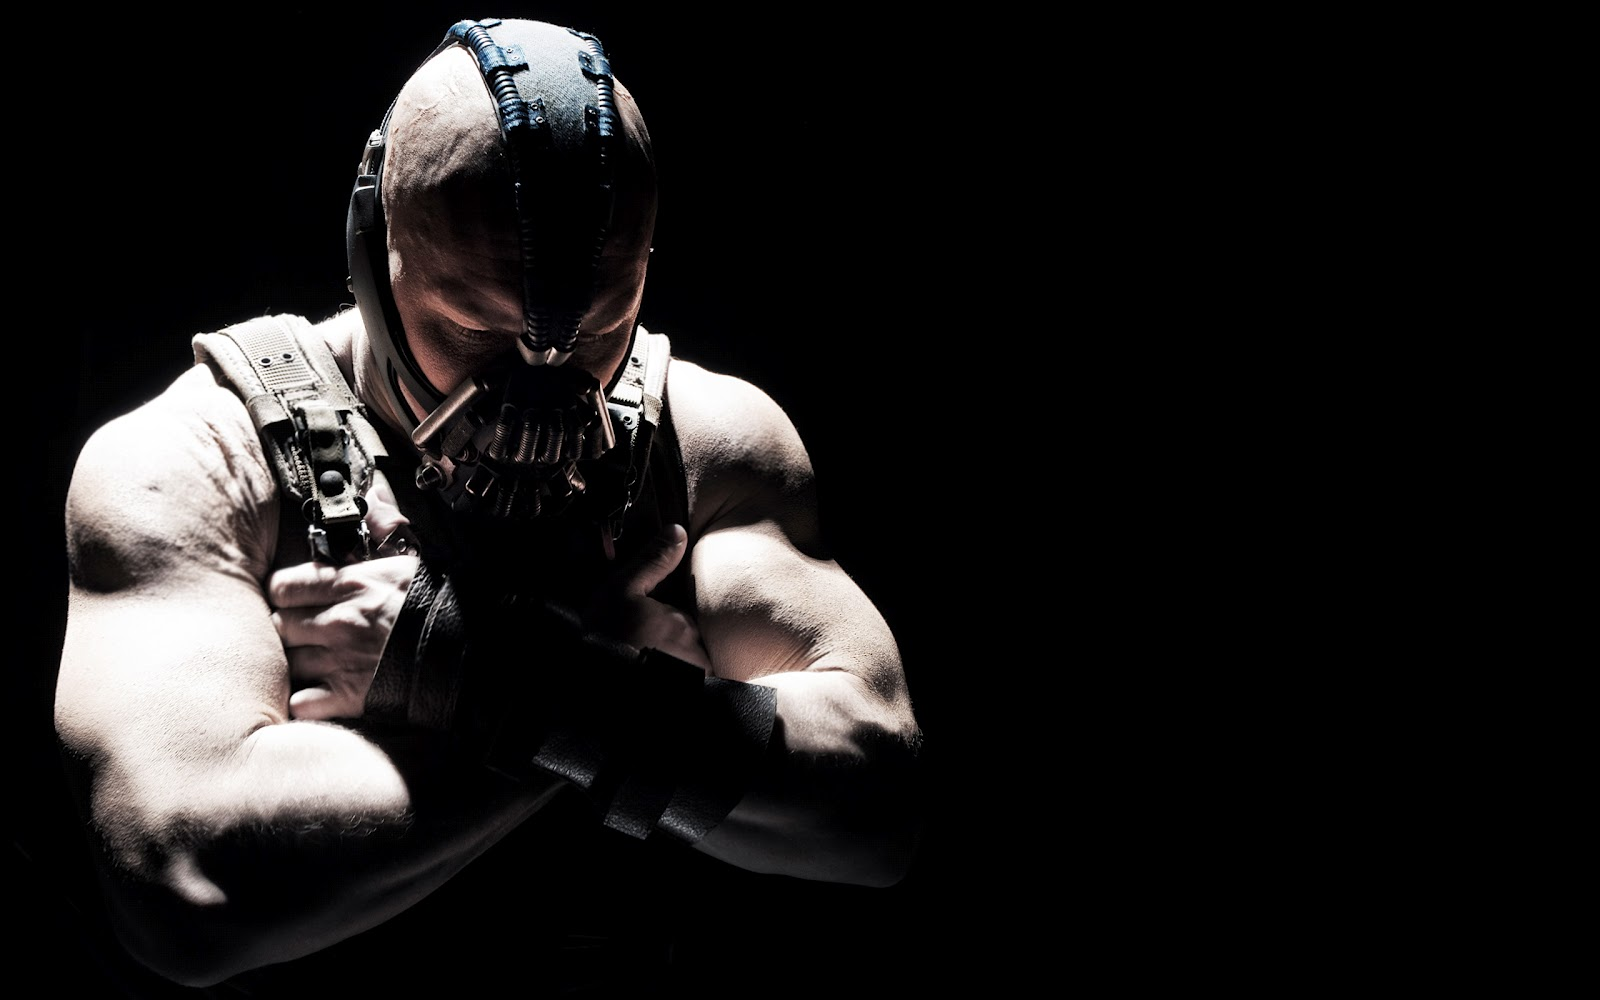 Bane dark knight rises hd wallpapers desktop wallpapers - Bane wallpaper ...